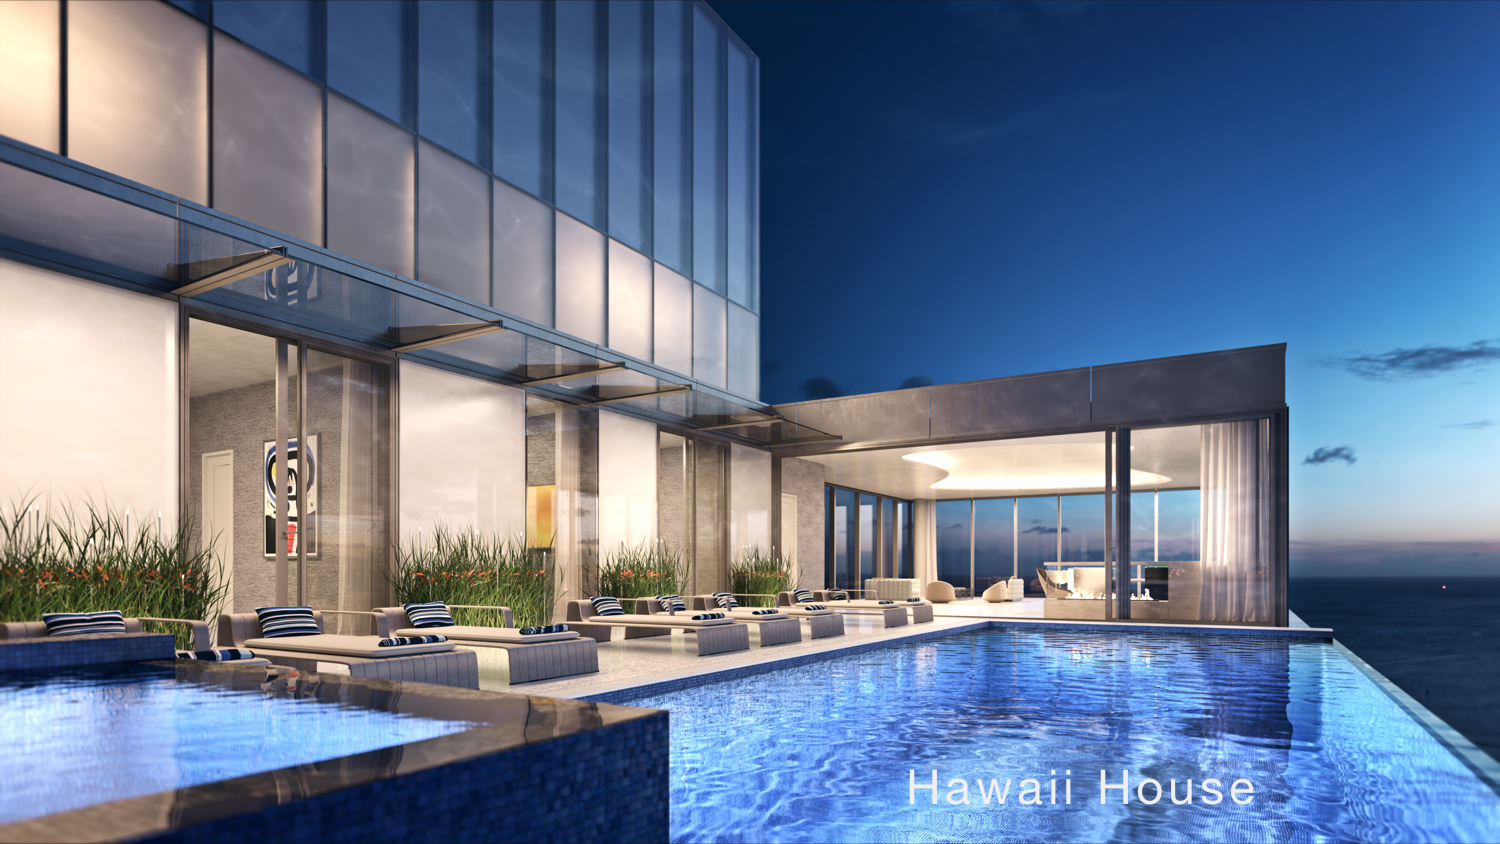 Waiea Honolulu grand penthouse pool - Hawaii House